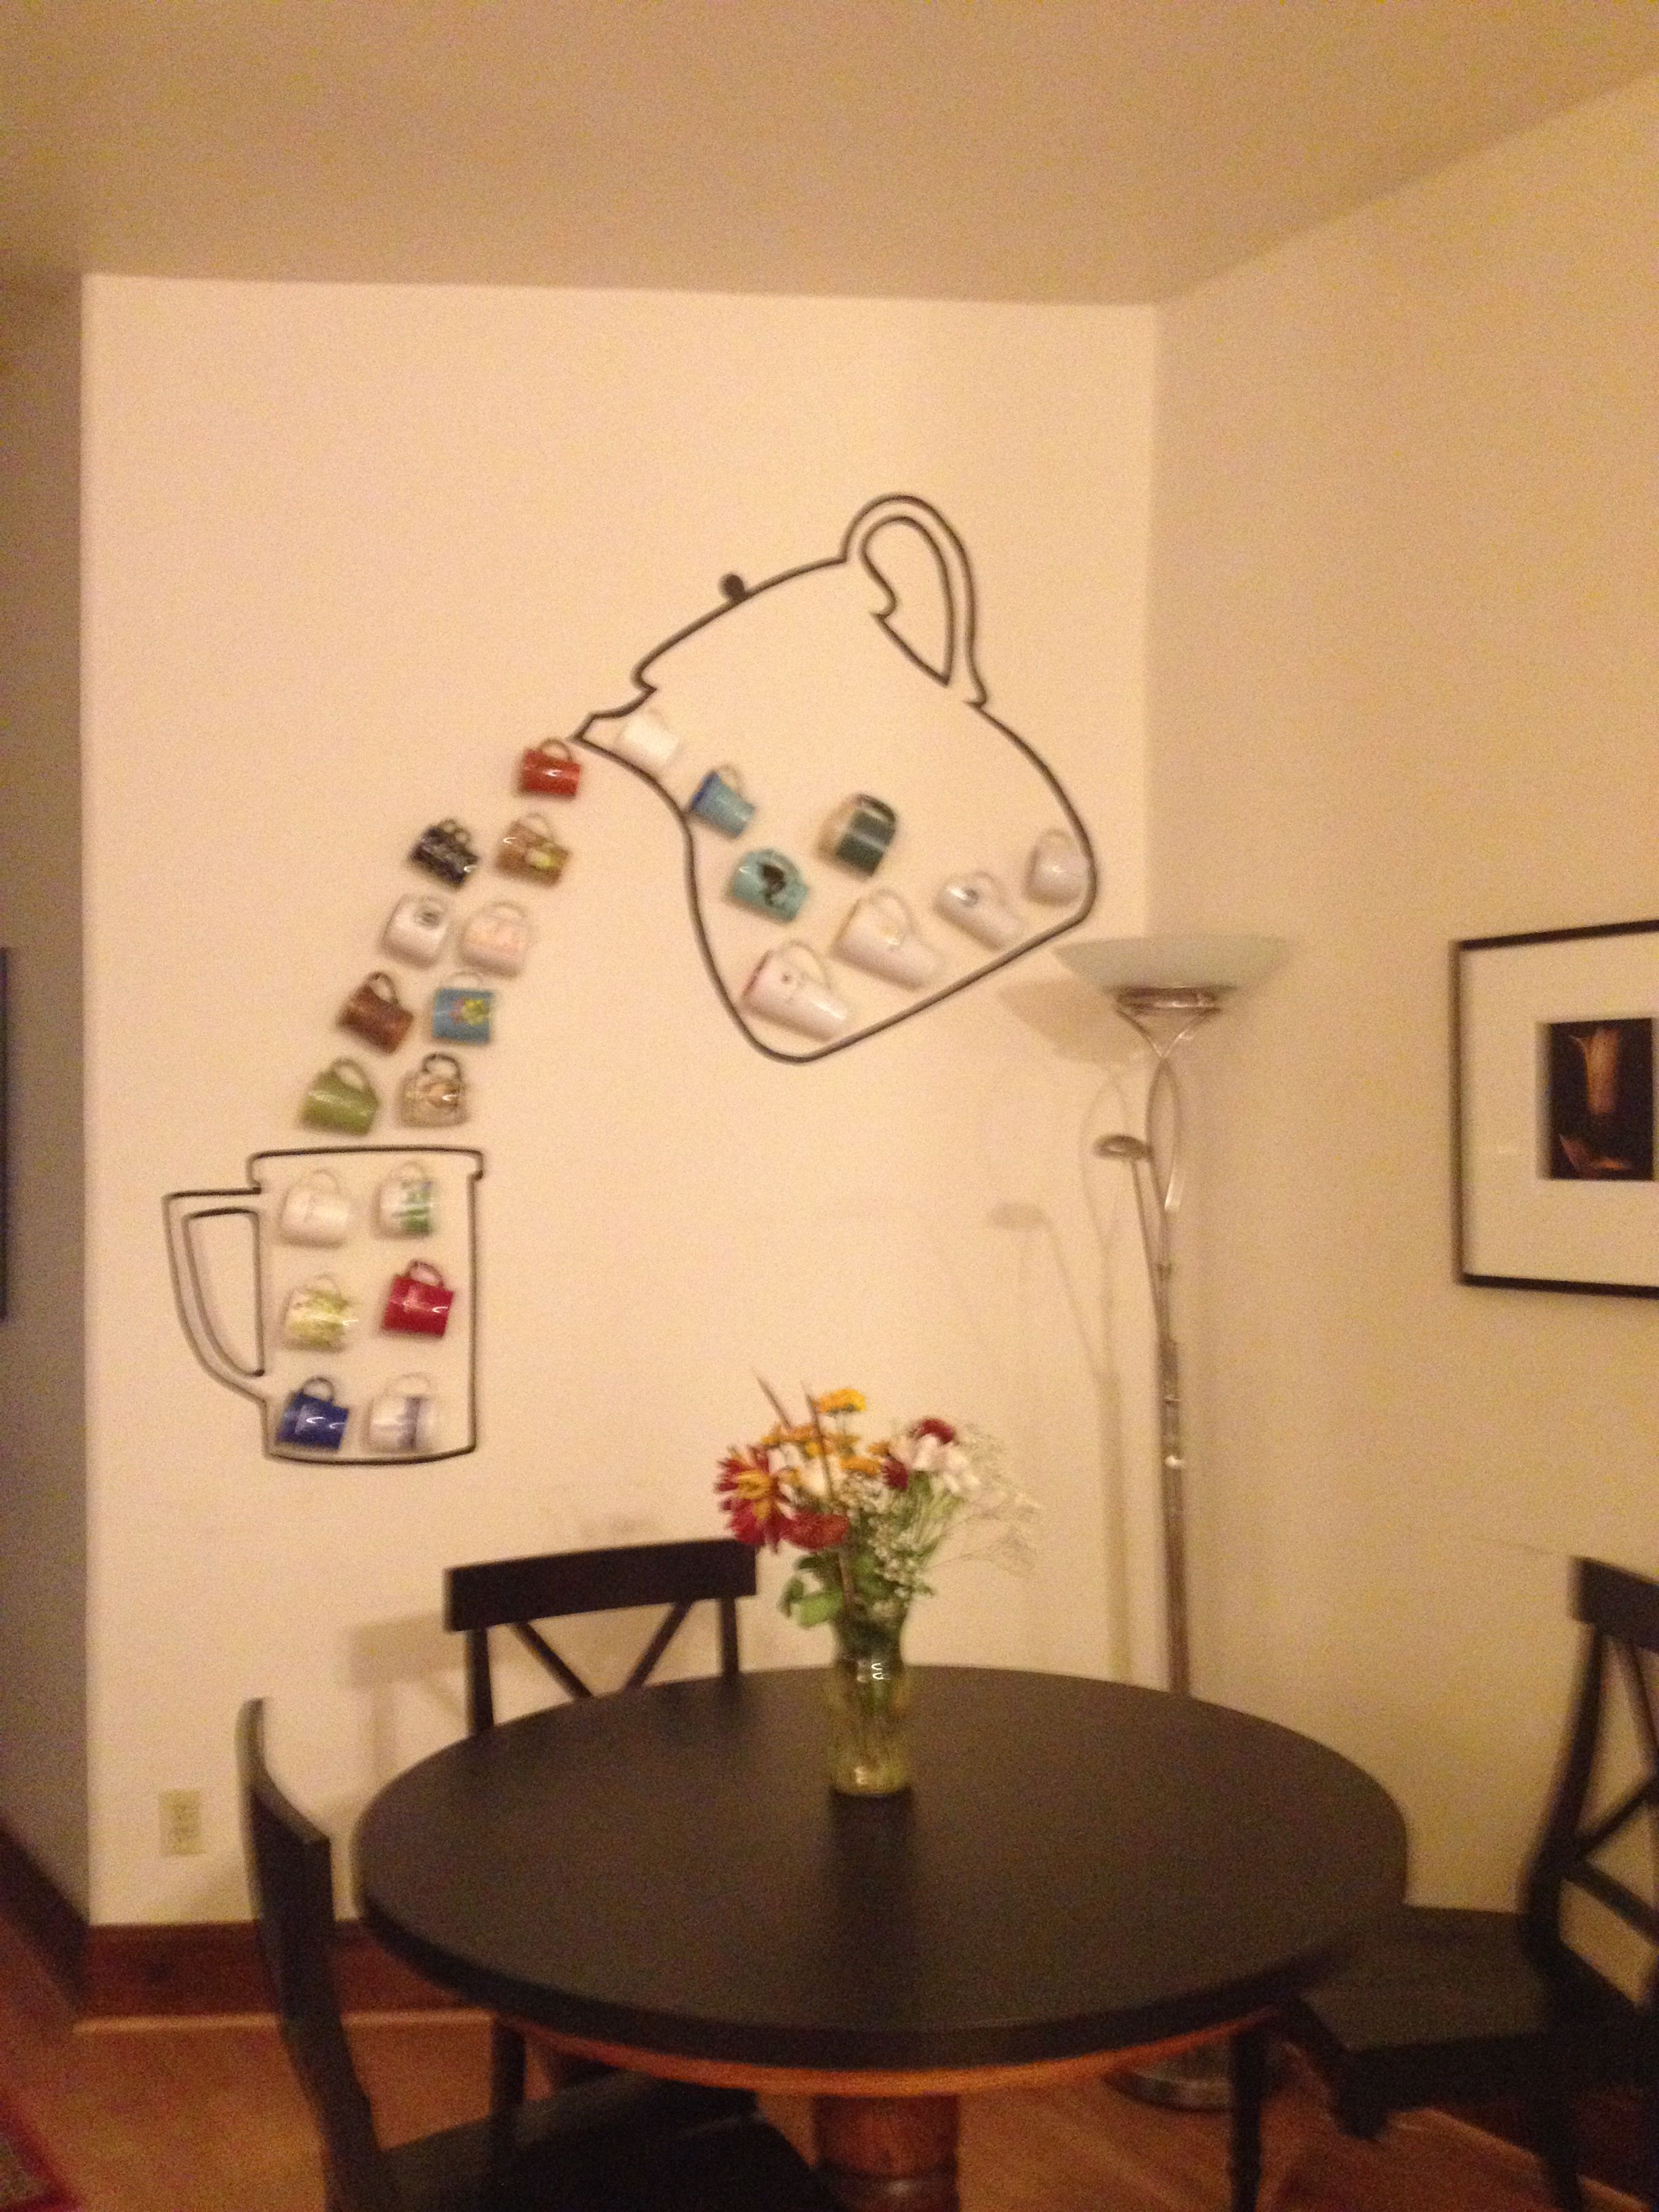 Coffee Mugs Display | Decorations | Pinterest | Display, Coffee and ...